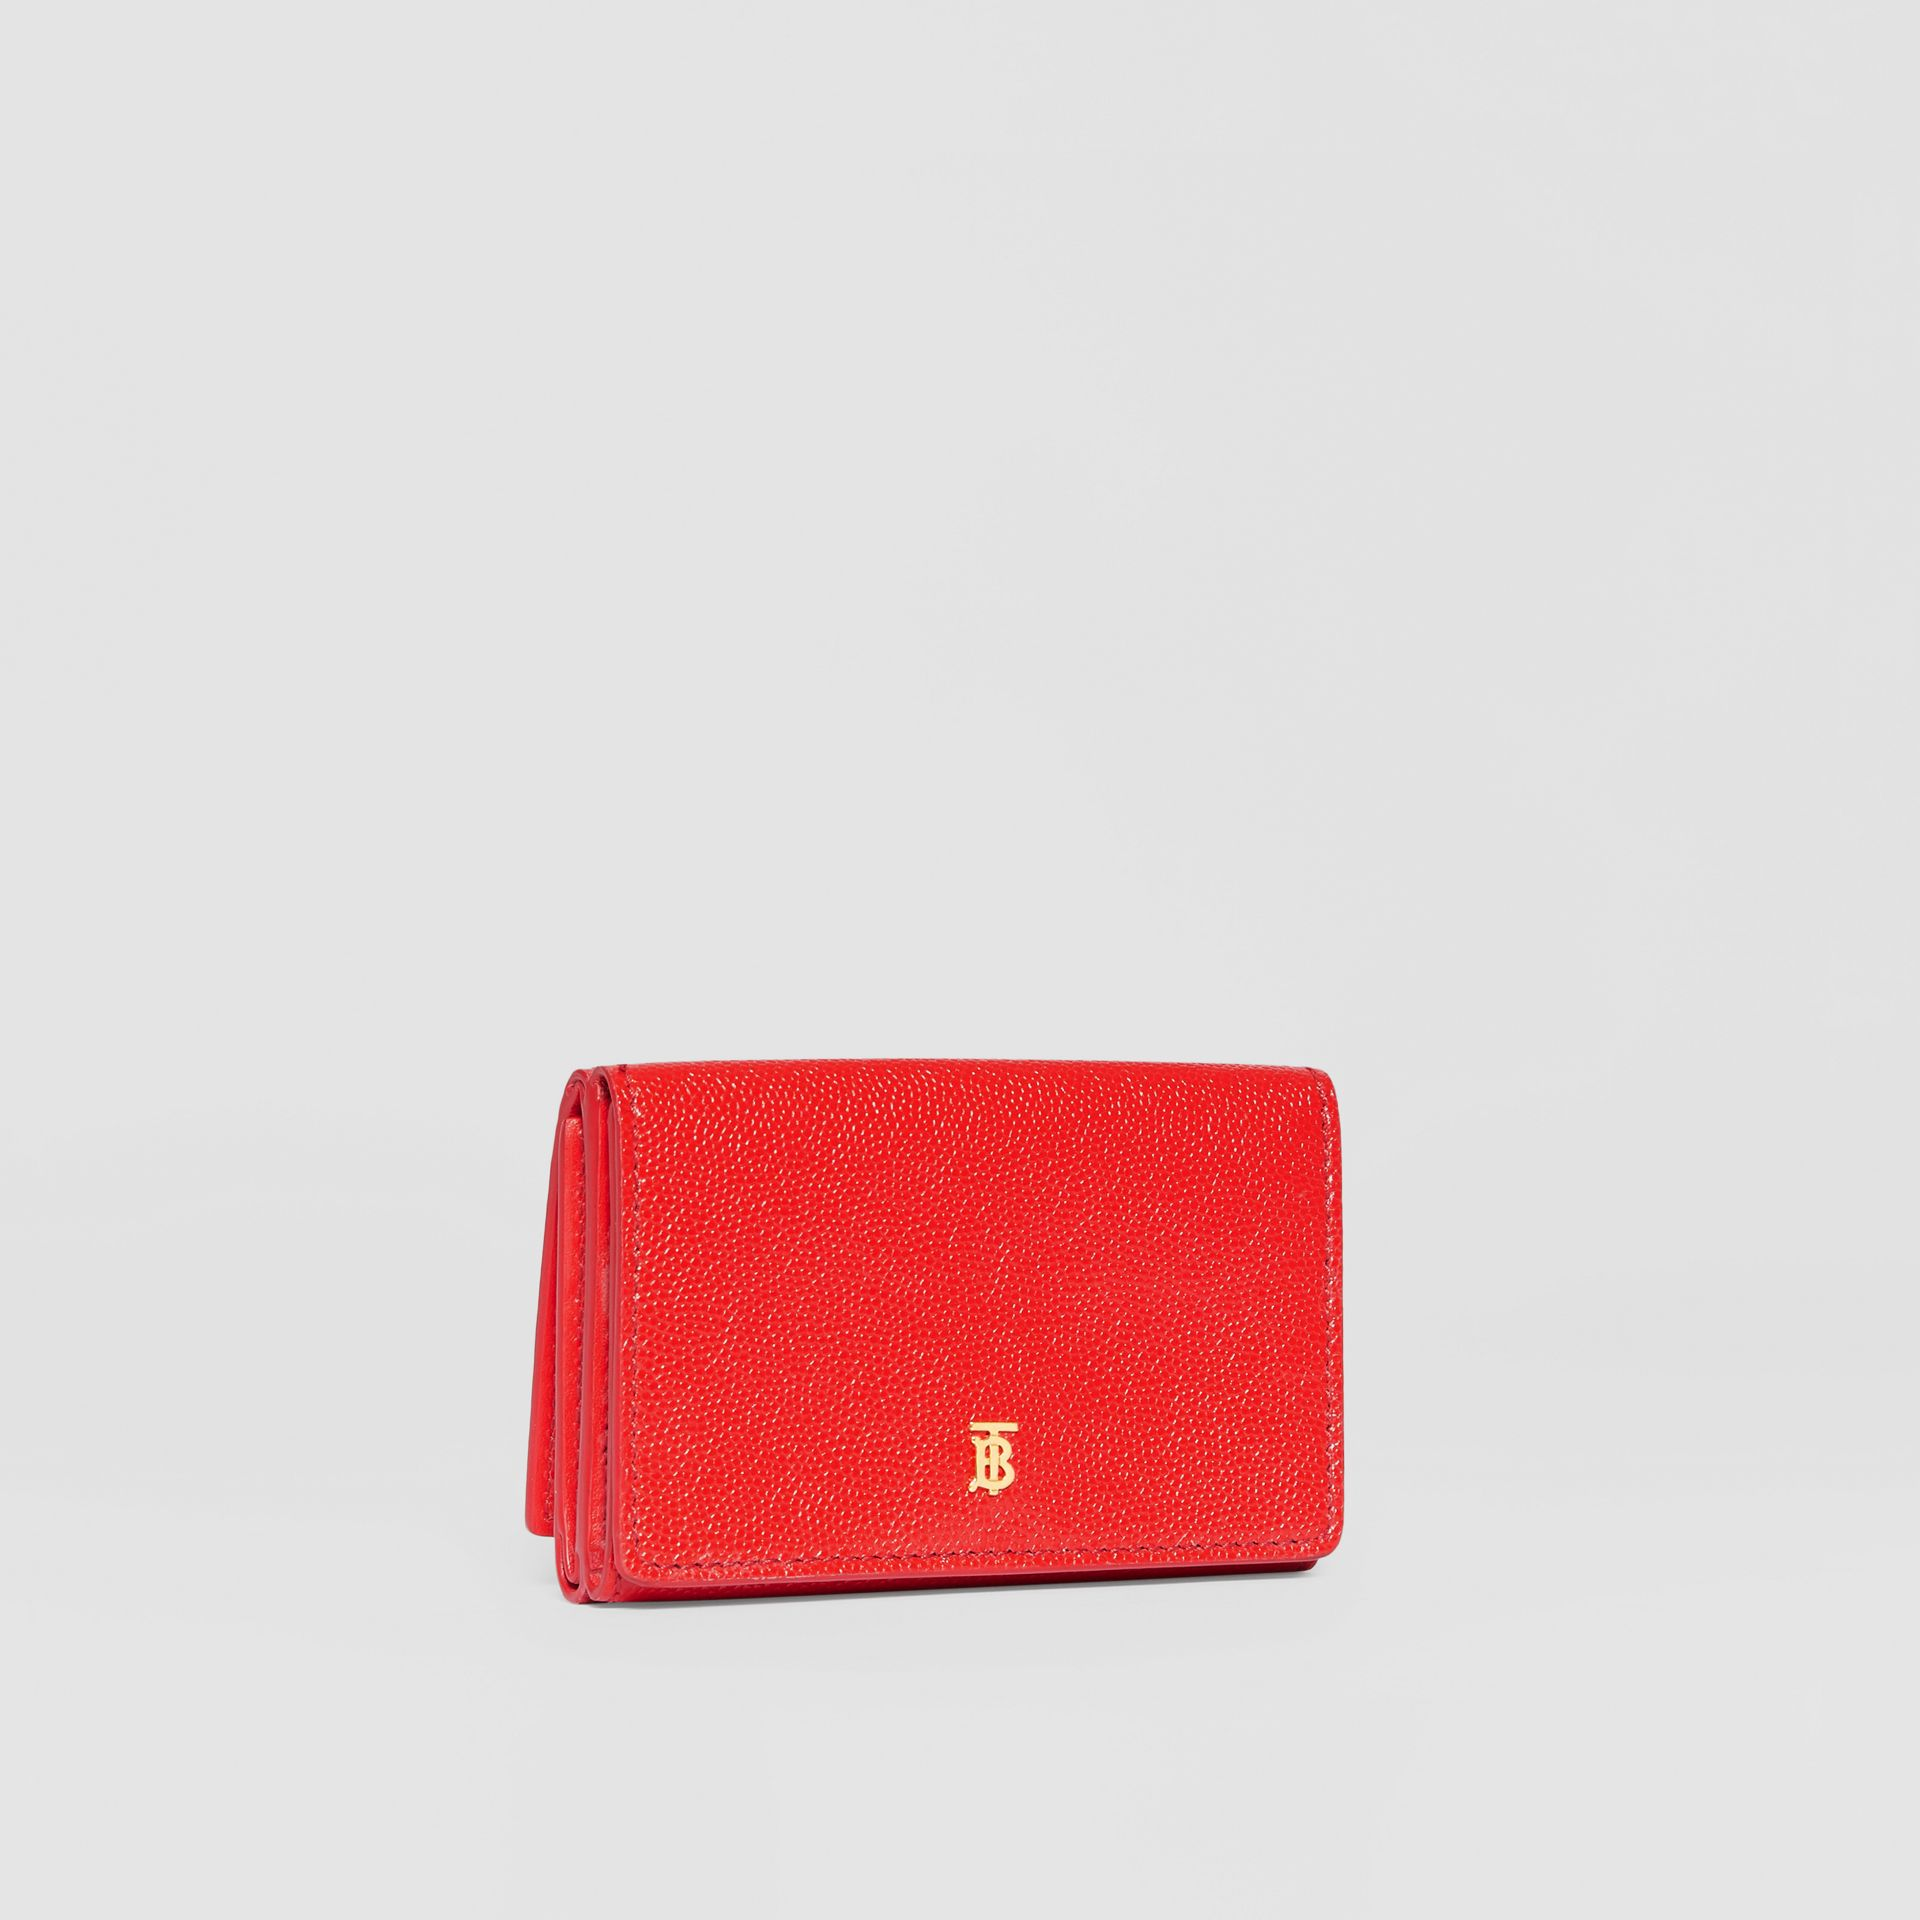 Small Grainy Leather Folding Wallet in Bright Red - Women | Burberry - gallery image 3